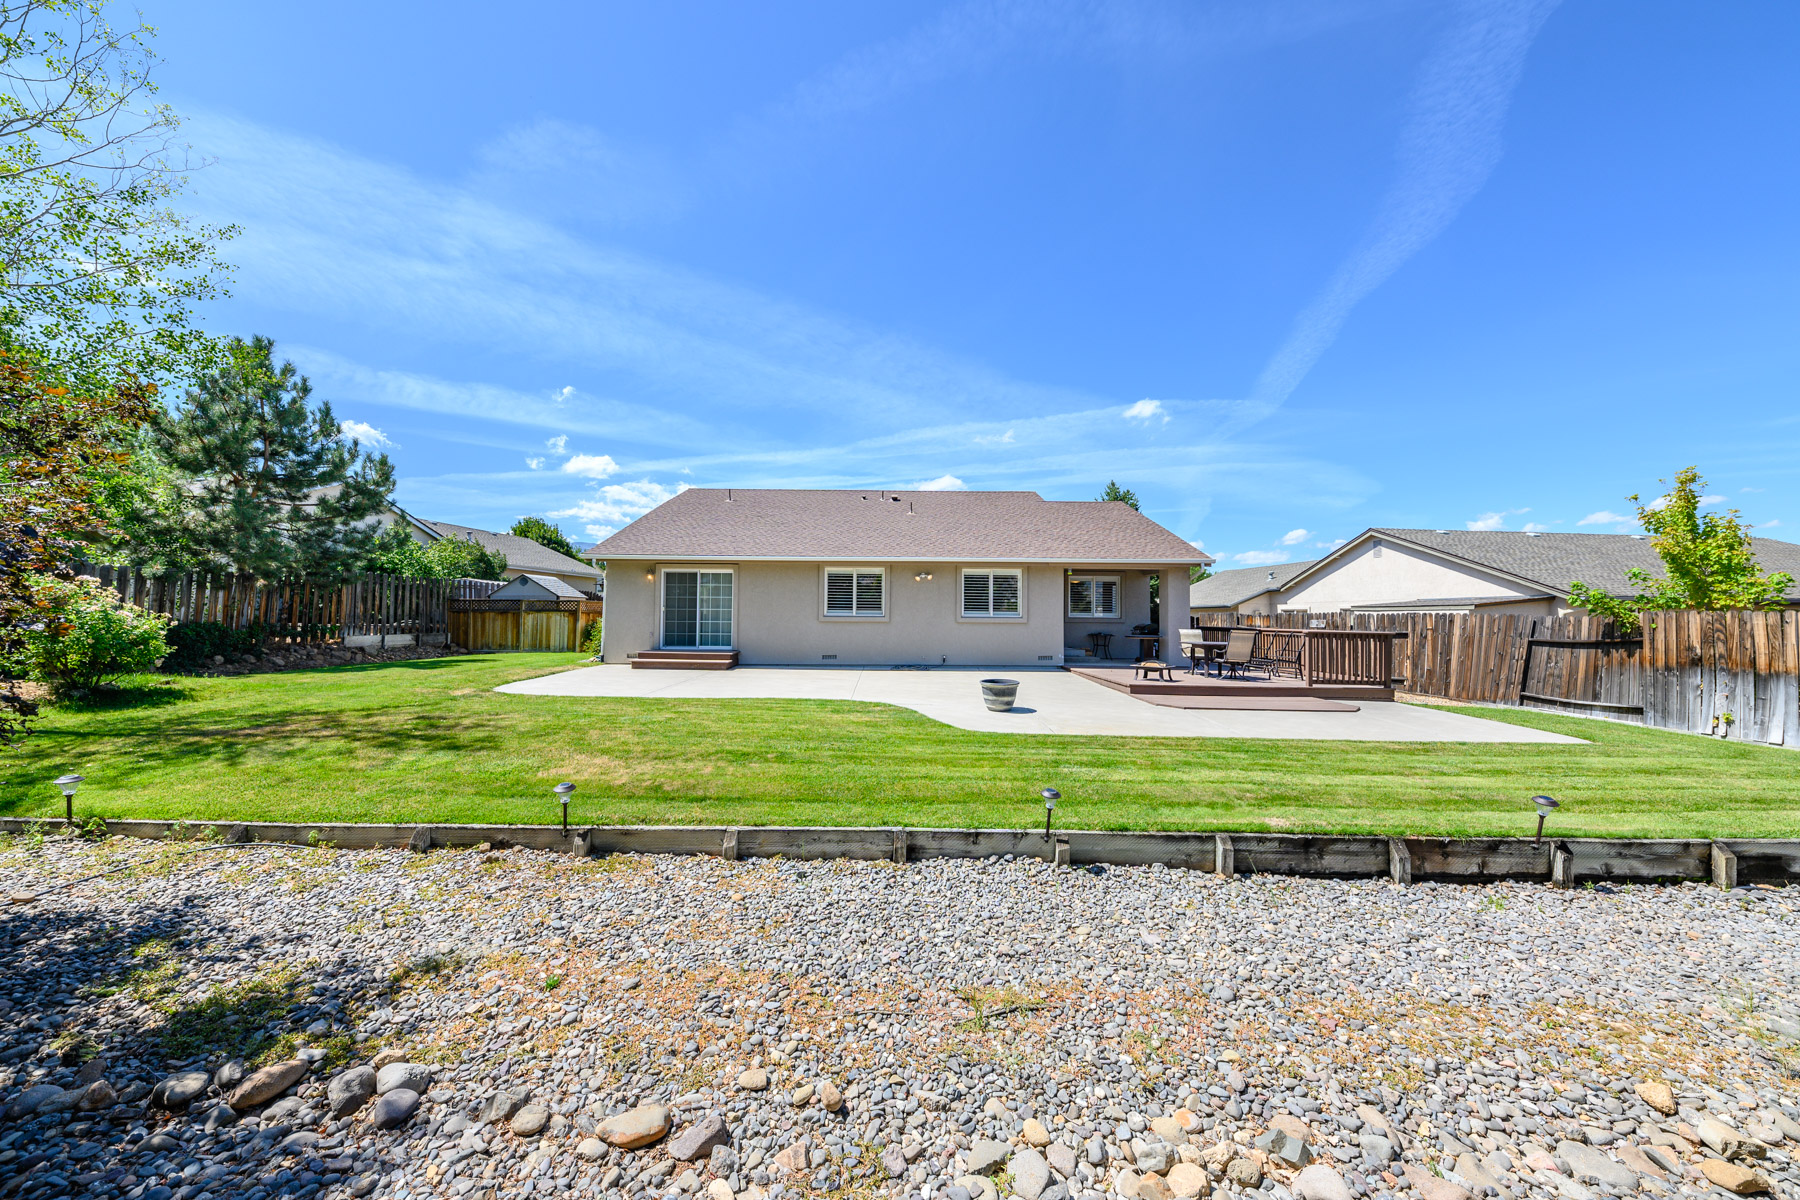 Additional photo for property listing at 16080 Pine Valley St., Reno 16080 Pine Valley Dr. Reno, Nevada 89511 United States